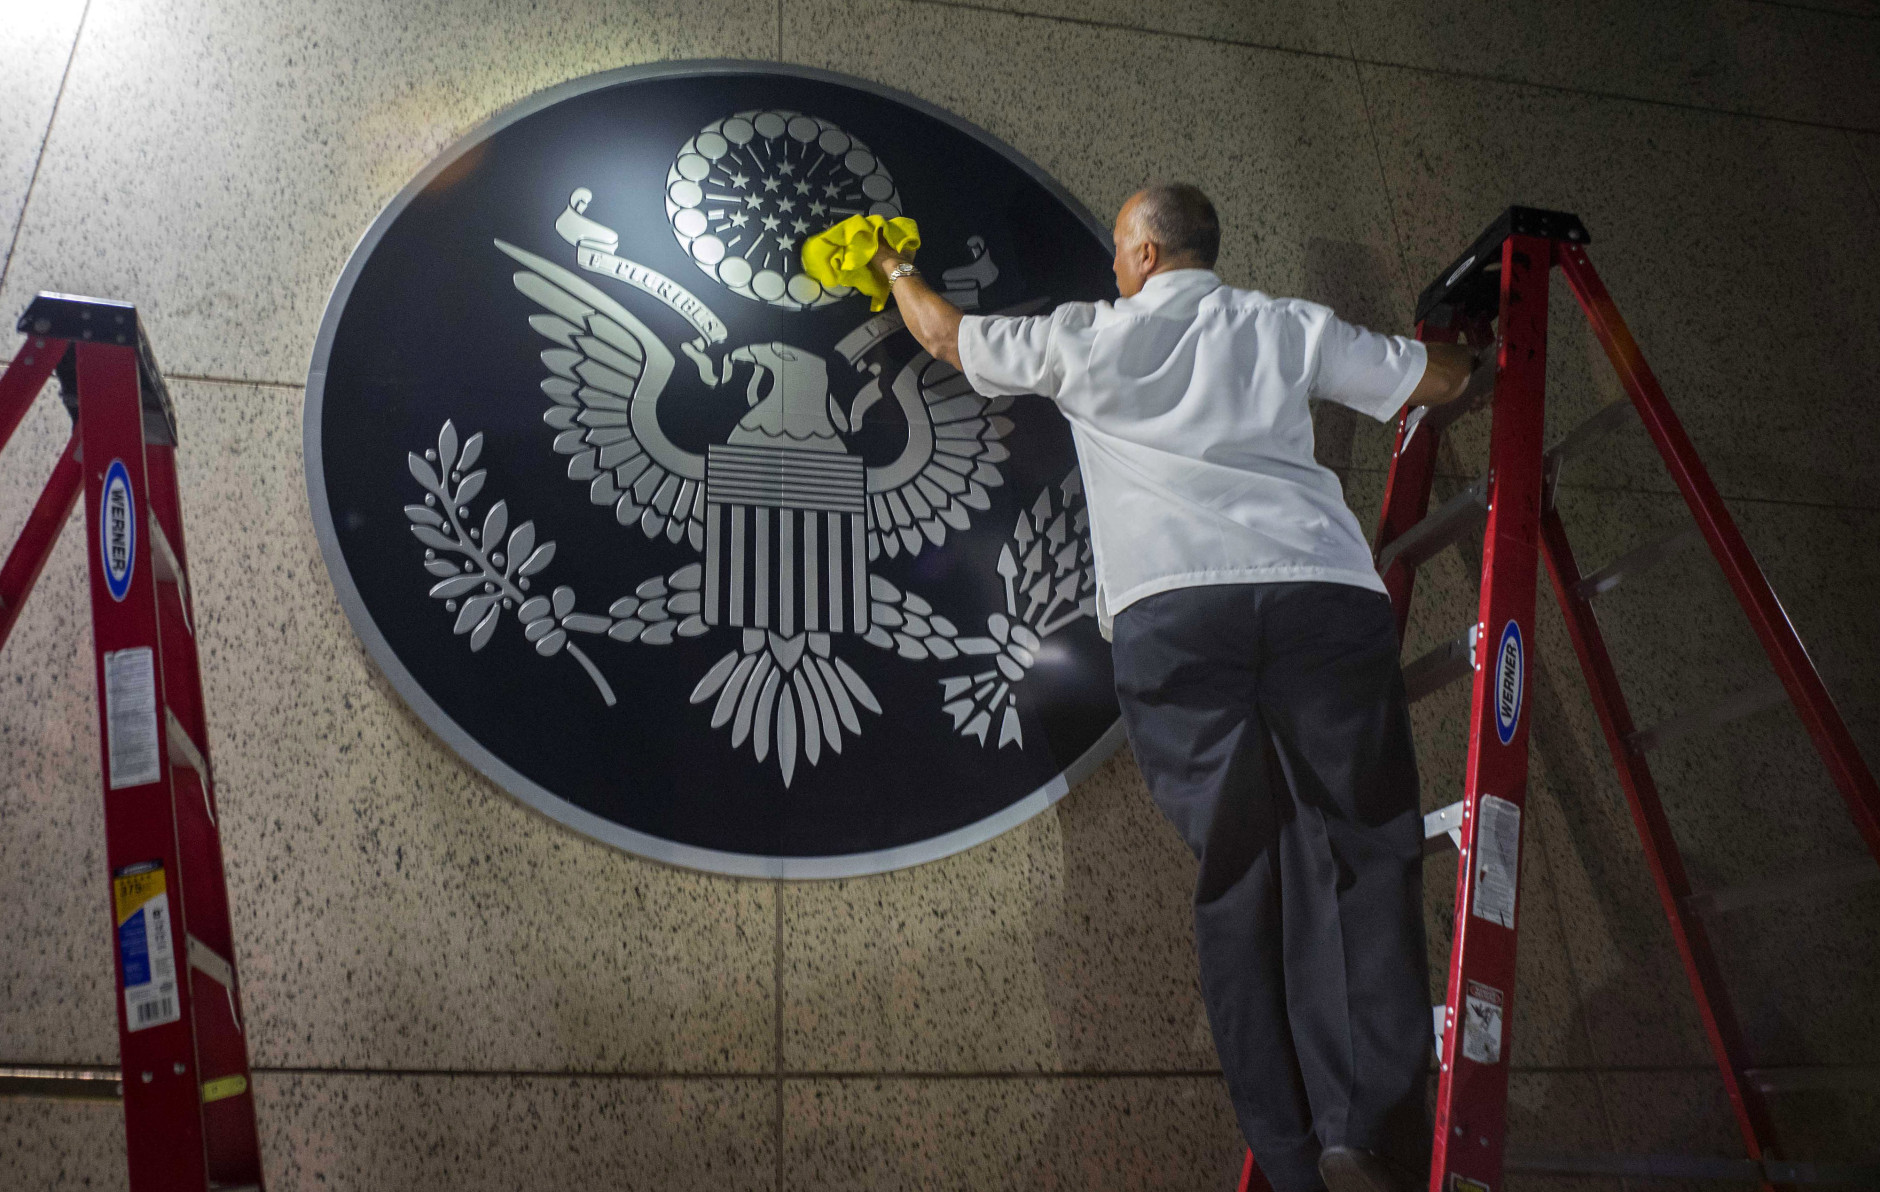 FILE - In this Aug. 14, 2015 file photo, a worker wipes a representation of the The Great Seal of the United States at the newly opened U.S. Embassy in Havana, Cuba. While the agenda for President Barack Obama's March 2016 visit is still being worked out, it includes plans for a private meeting with dissidents, but the focus of his trip will almost certainly be elsewhere, like the U.S. trade embargo on Cuba and remaining limits on U.S. travel to Cuba and business with the island. (AP Photo/Ramon Espinosa, File)